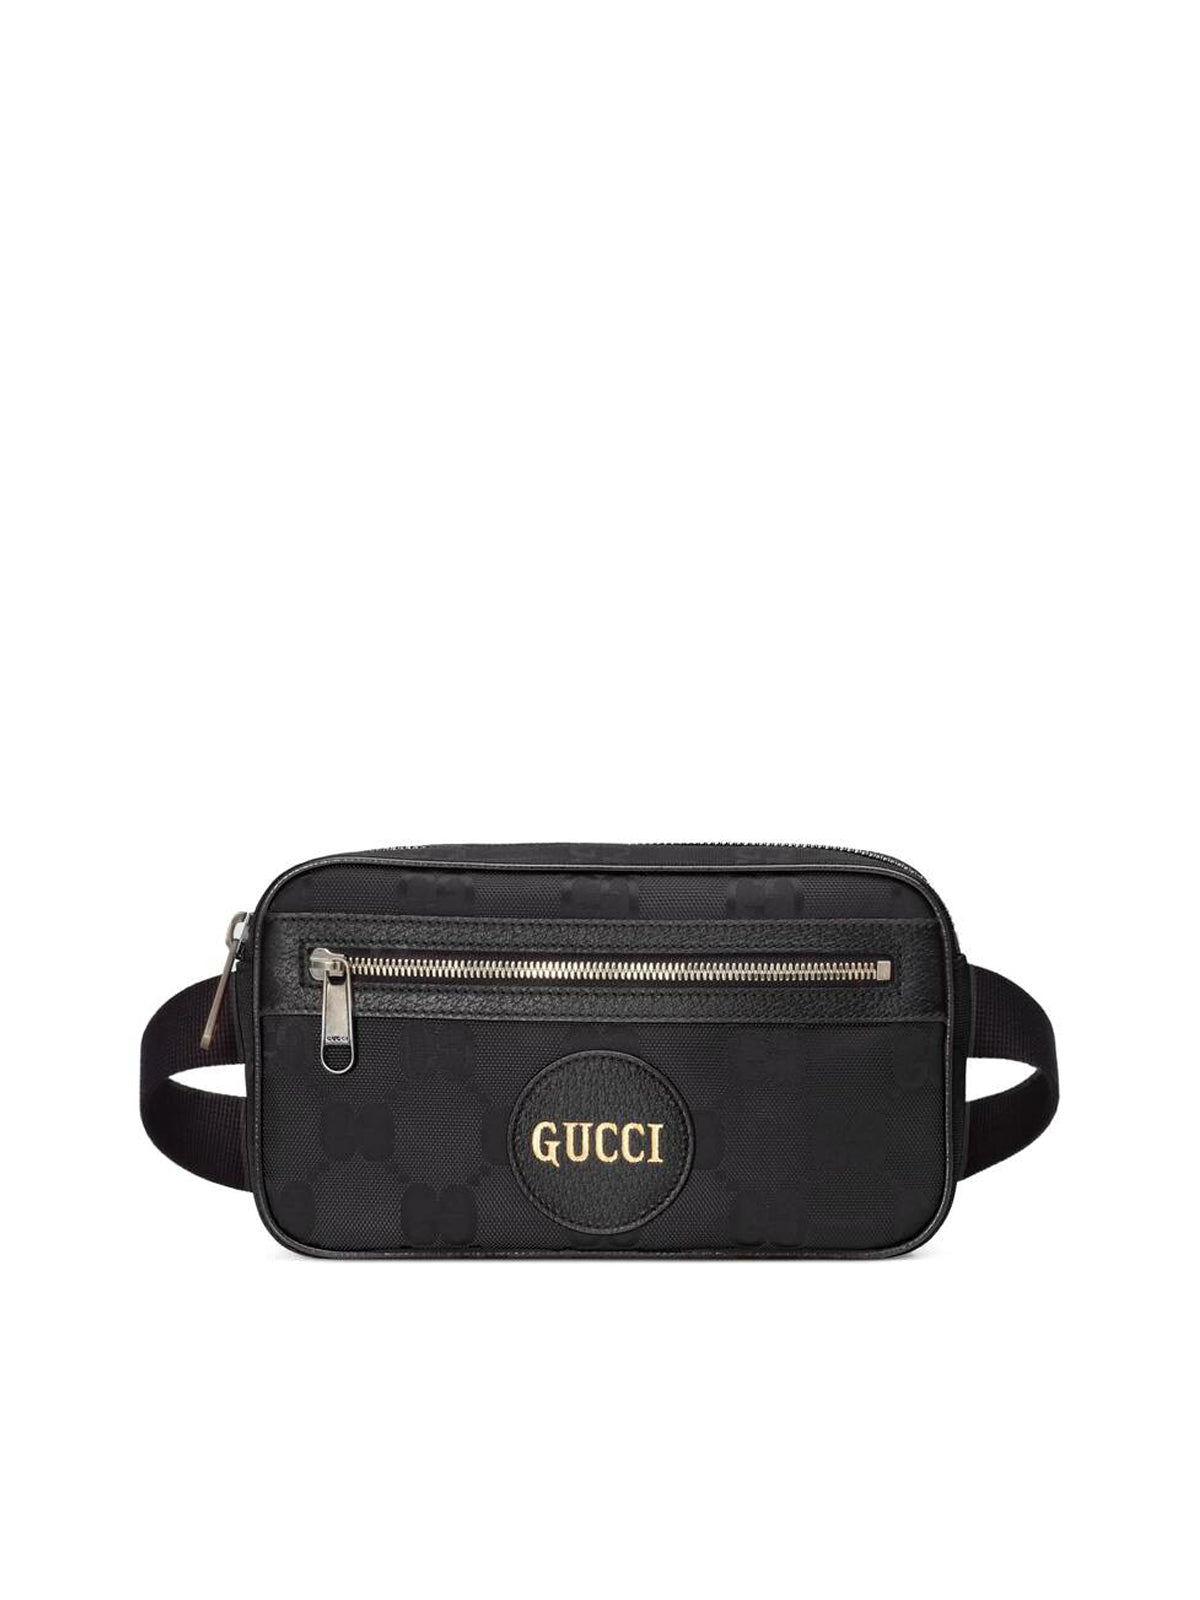 GG Supreme belt bag